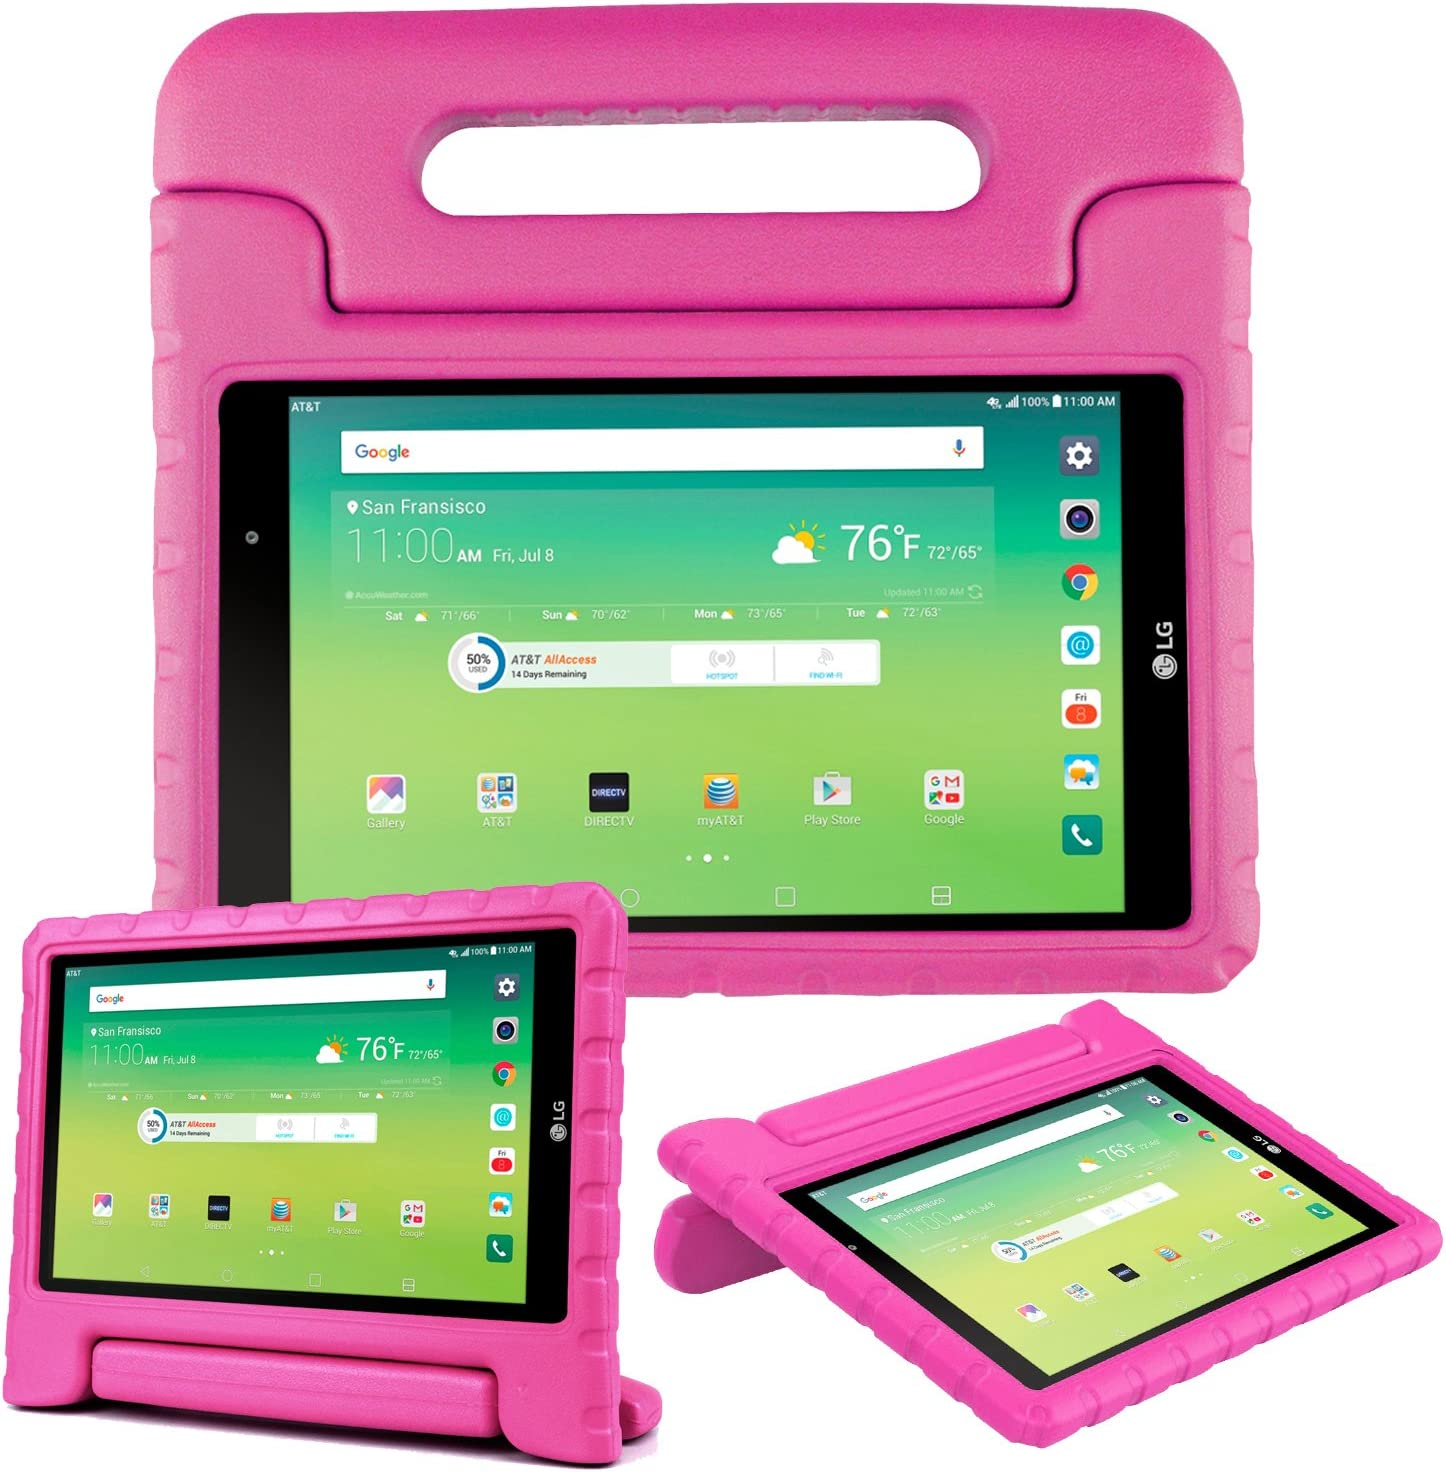 Bolete LG G Pad X 8.0 Inch kids Case, Shock Proof Super Protective Eva Foam Case Cover With Handle Stand for LG G Pad X 8.0 T-Mobile V521 / AT&T V520 Tablet, Rose